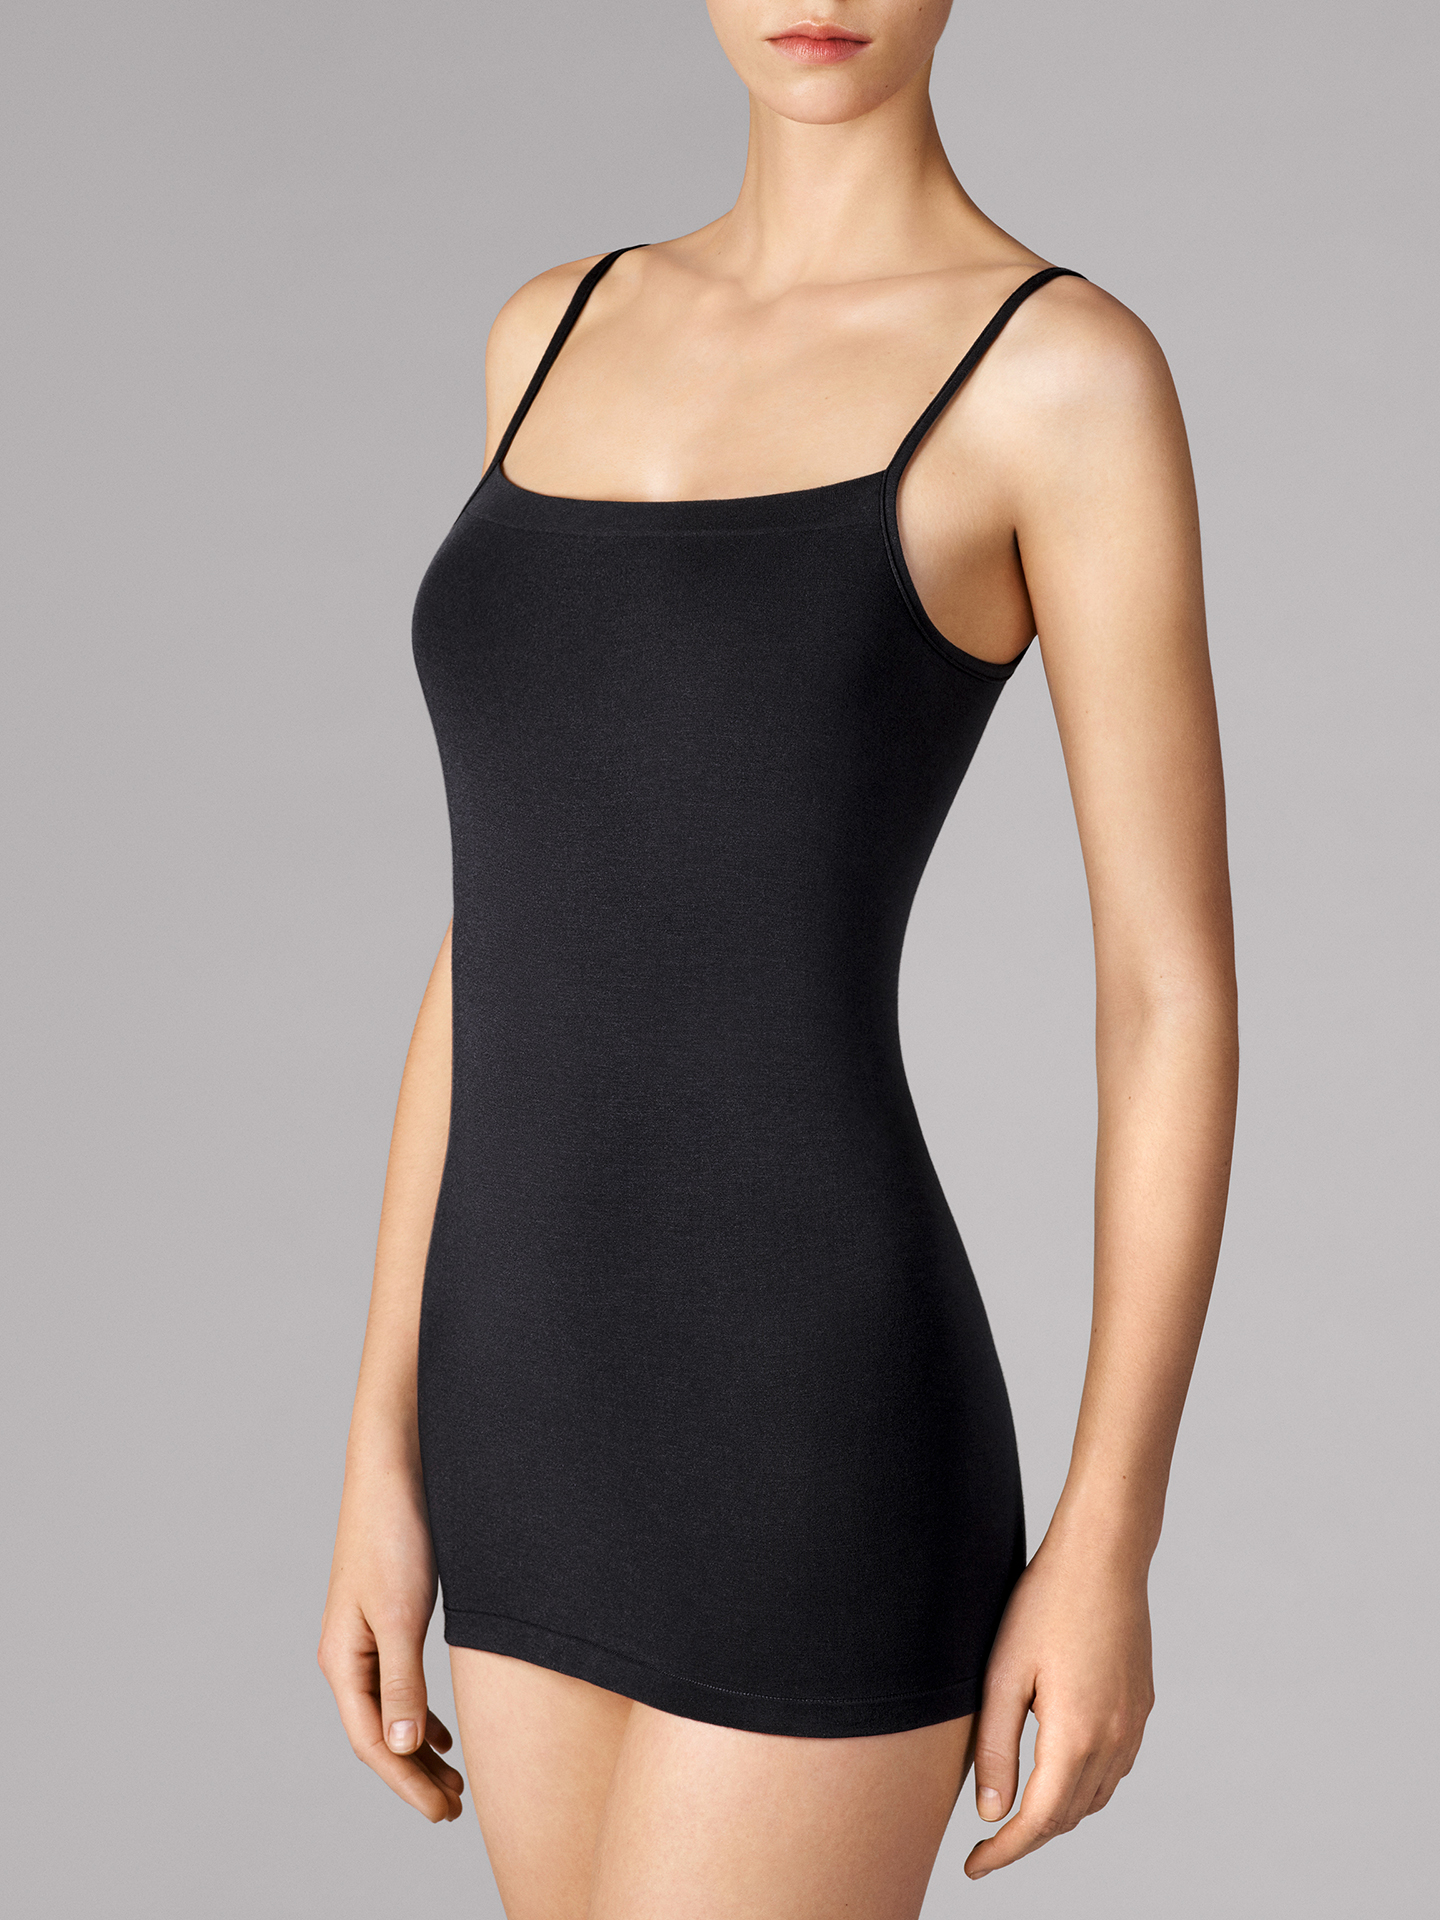 prezzo Wolford Apparel & Accessories > Clothing > Tops Hawaii Top 7005 L in offerta